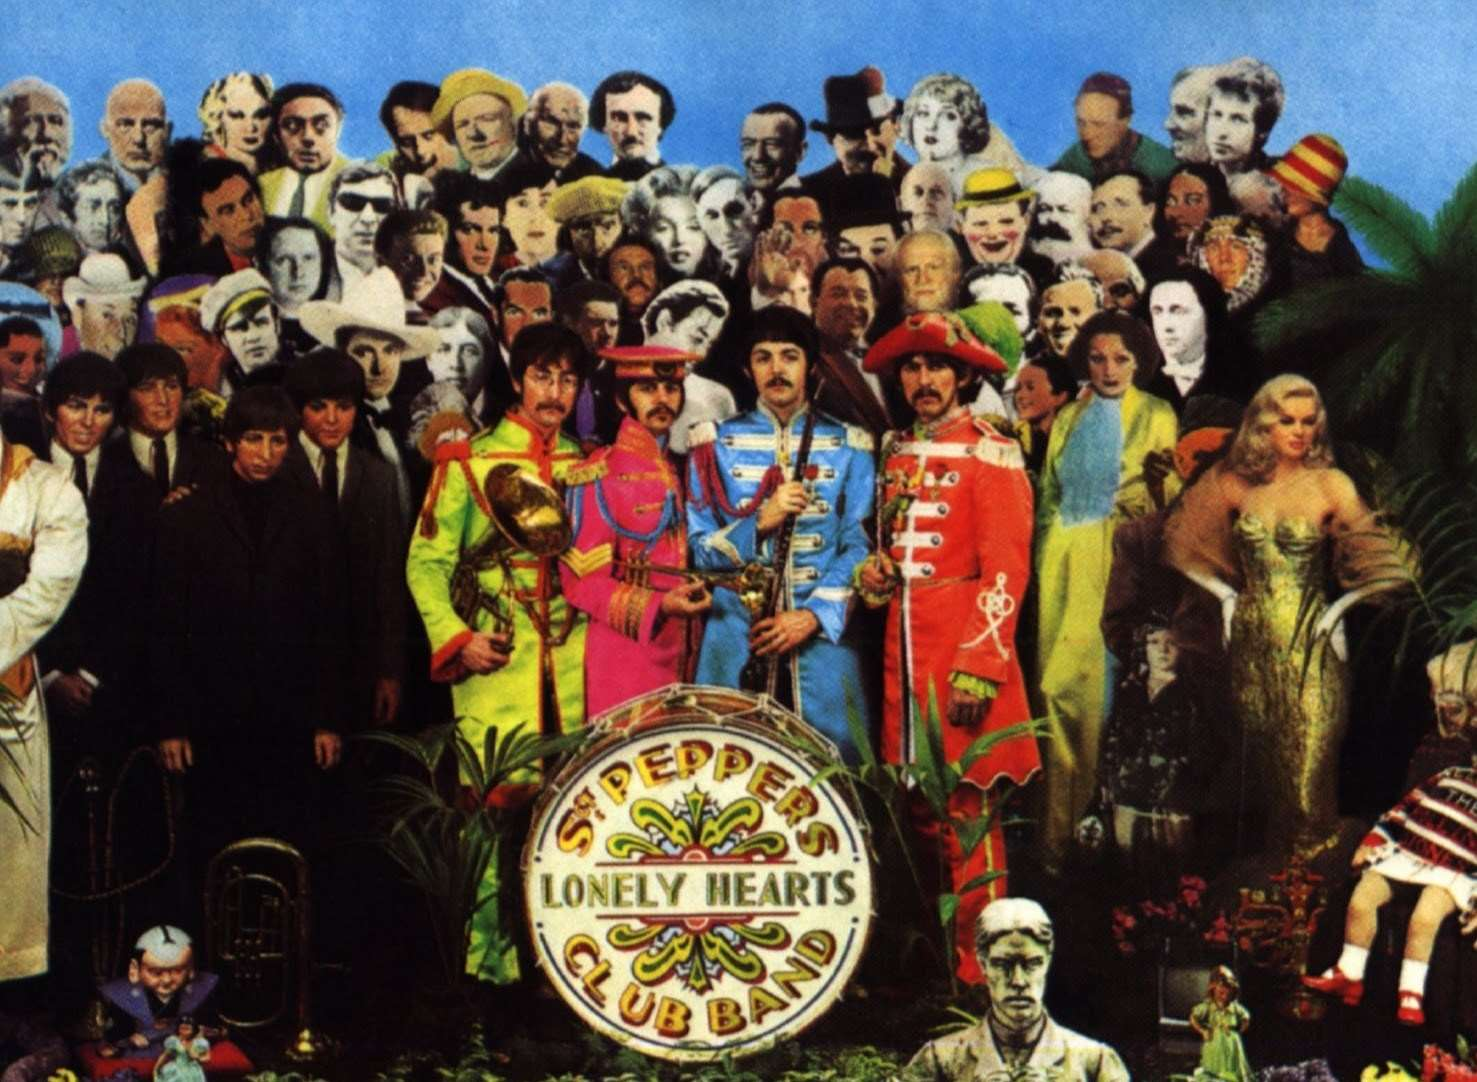 Dartford-born Peter Blake designed the Sgt Pepper album